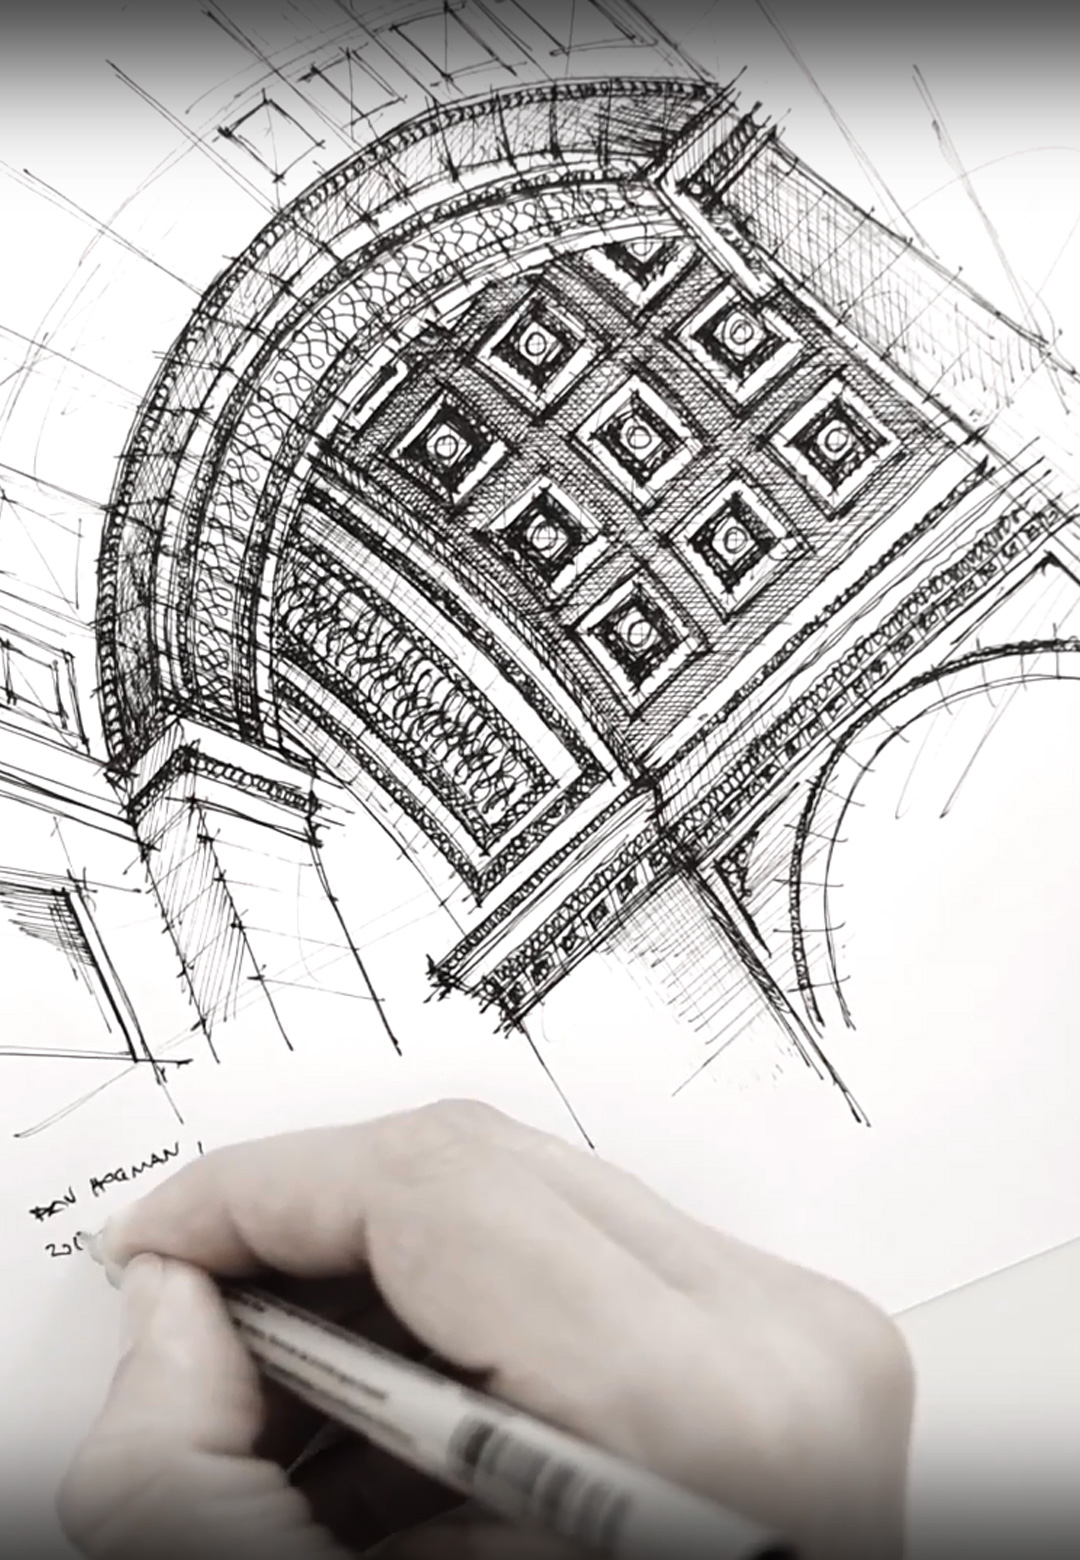 Sketching Arc de Triomphe | Dan Hogman | STIRworld